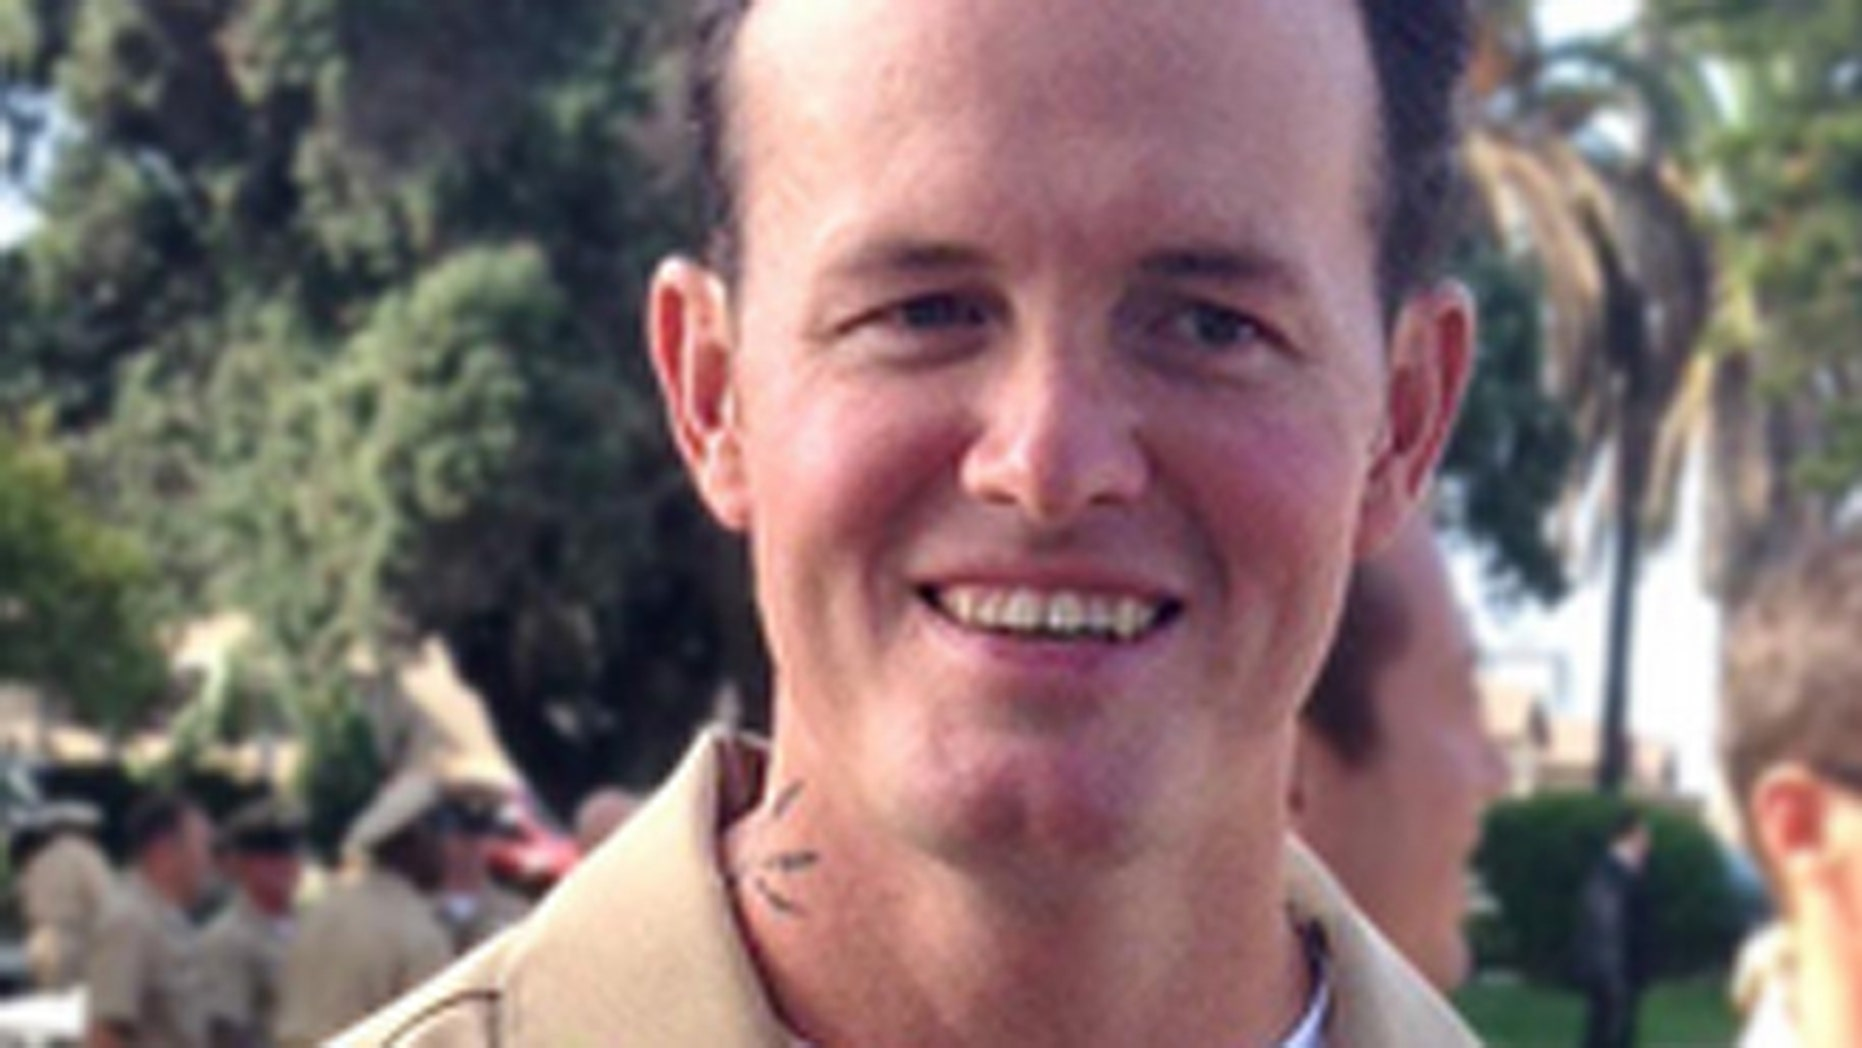 Bradley S. Cavner, 31, died from injuries sustained during an accident while conducting parachute jump training operations in El Centro, California.